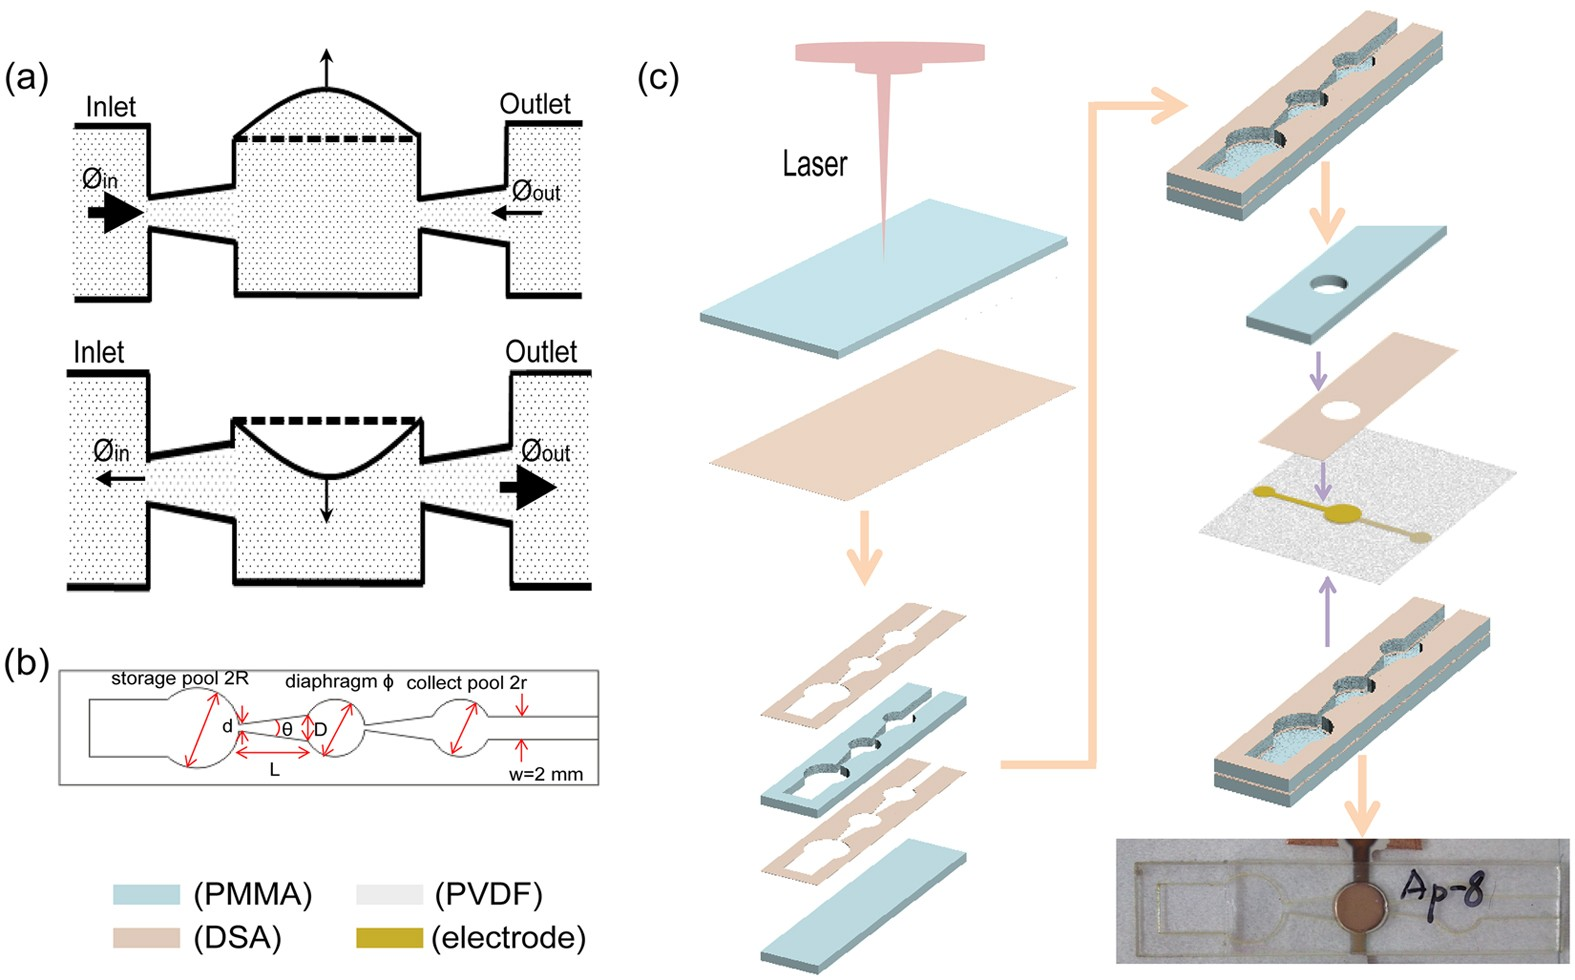 A Controllable and Integrated Pump-enabled Microfluidic Chip